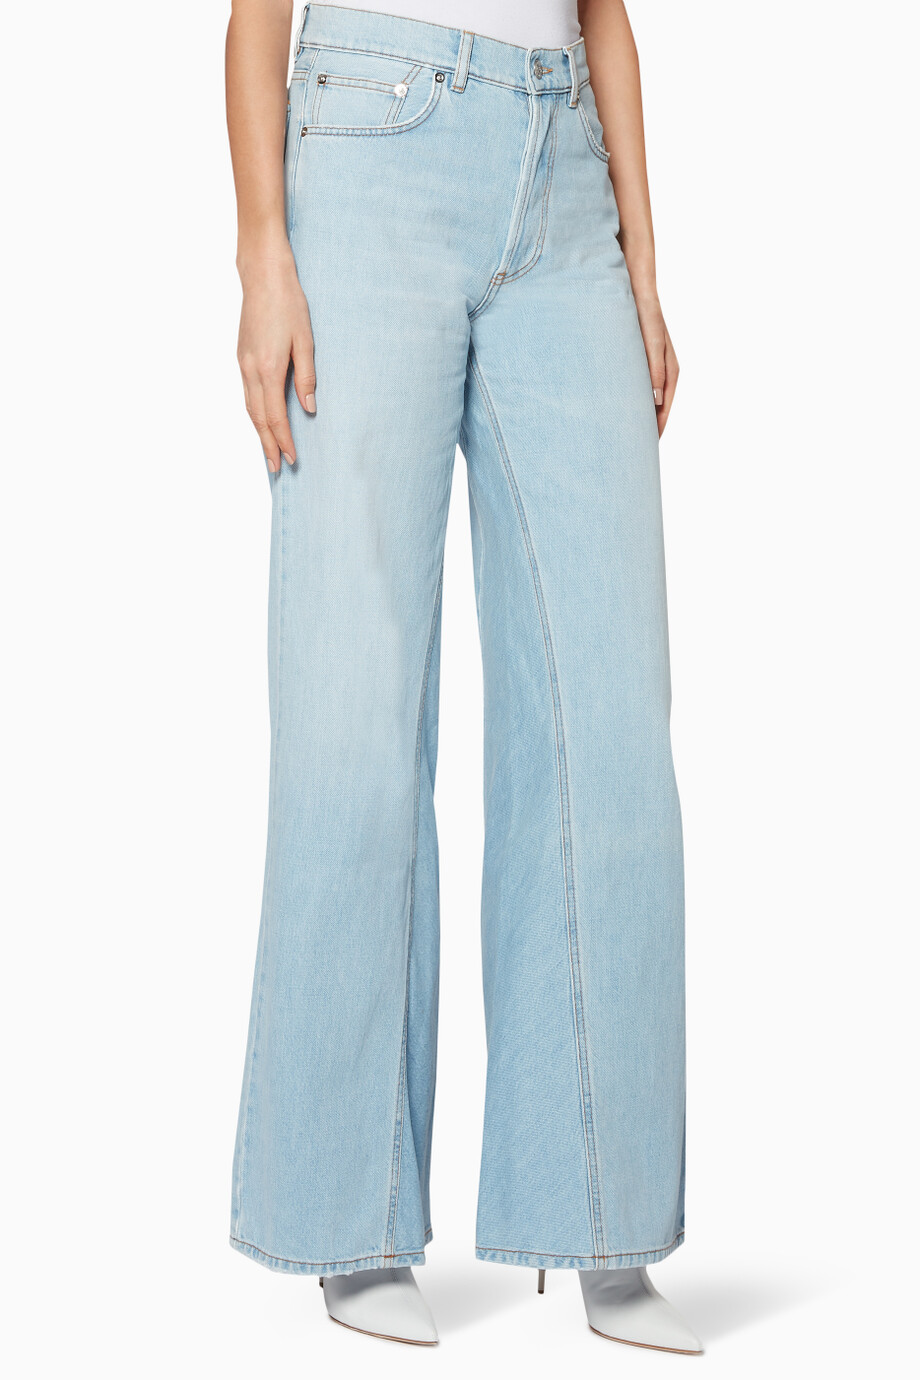 0c188f86 Shop Ganni Blue Light-Blue Wide-Leg Sheldon Jeans for Women | Ounass UAE